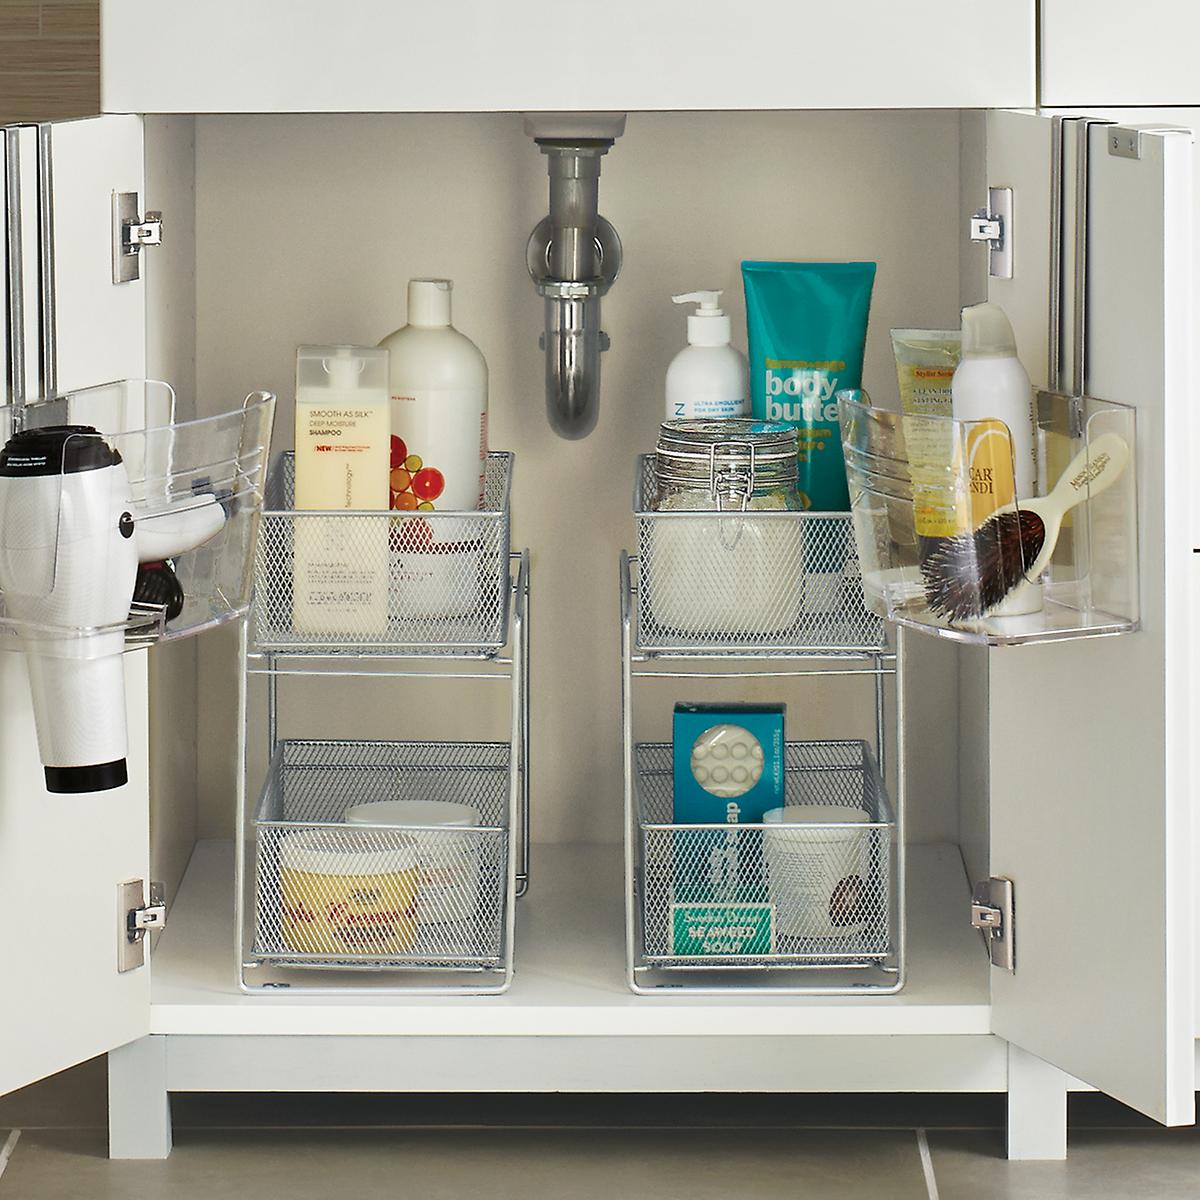 Bathroom organizers, under the sink storage